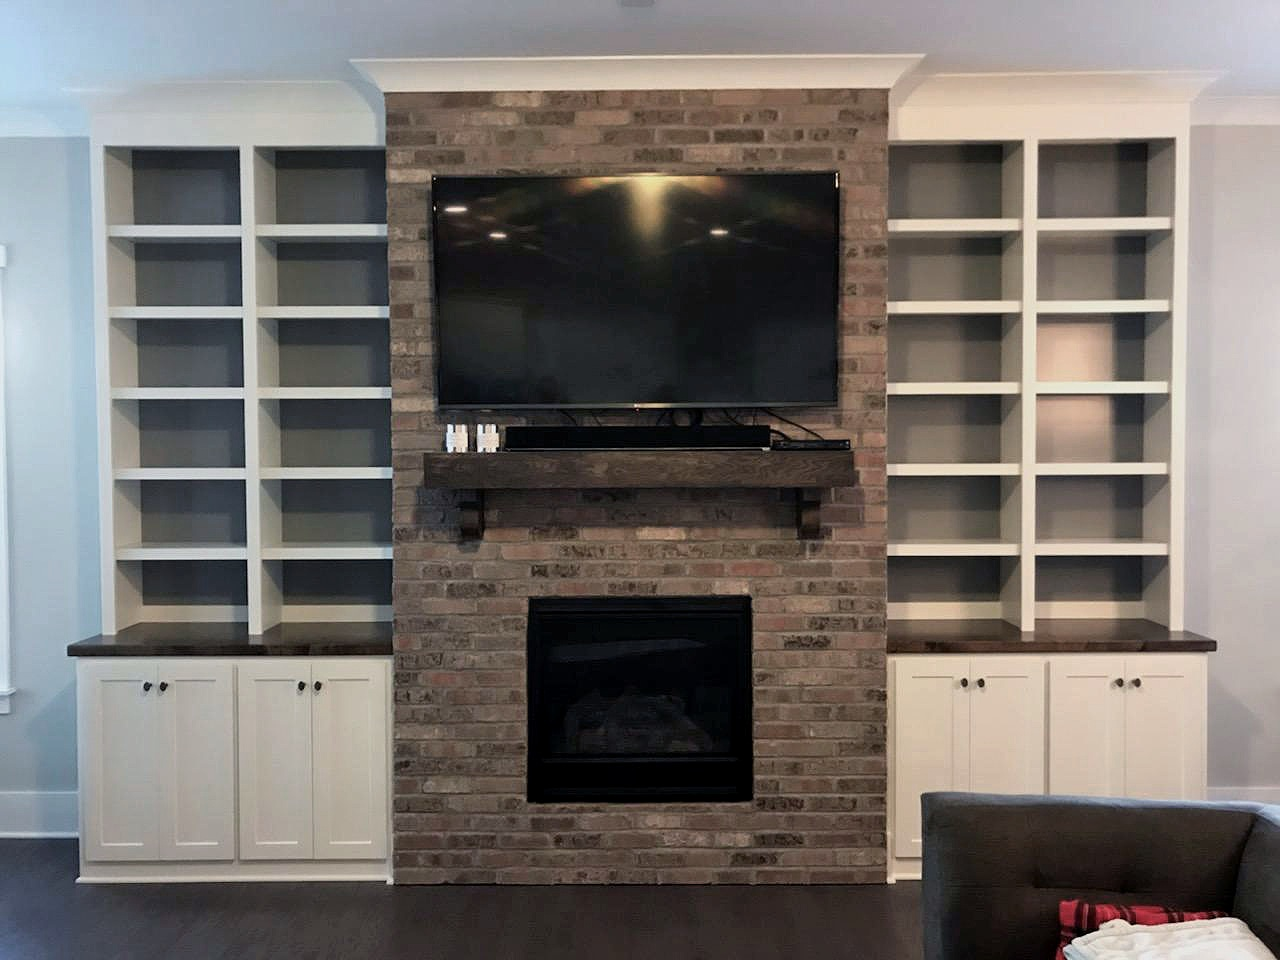 Fireplace Built-Ins with Adjustable Shelves, Accent Backer Color, Shaker Doors, and Crown